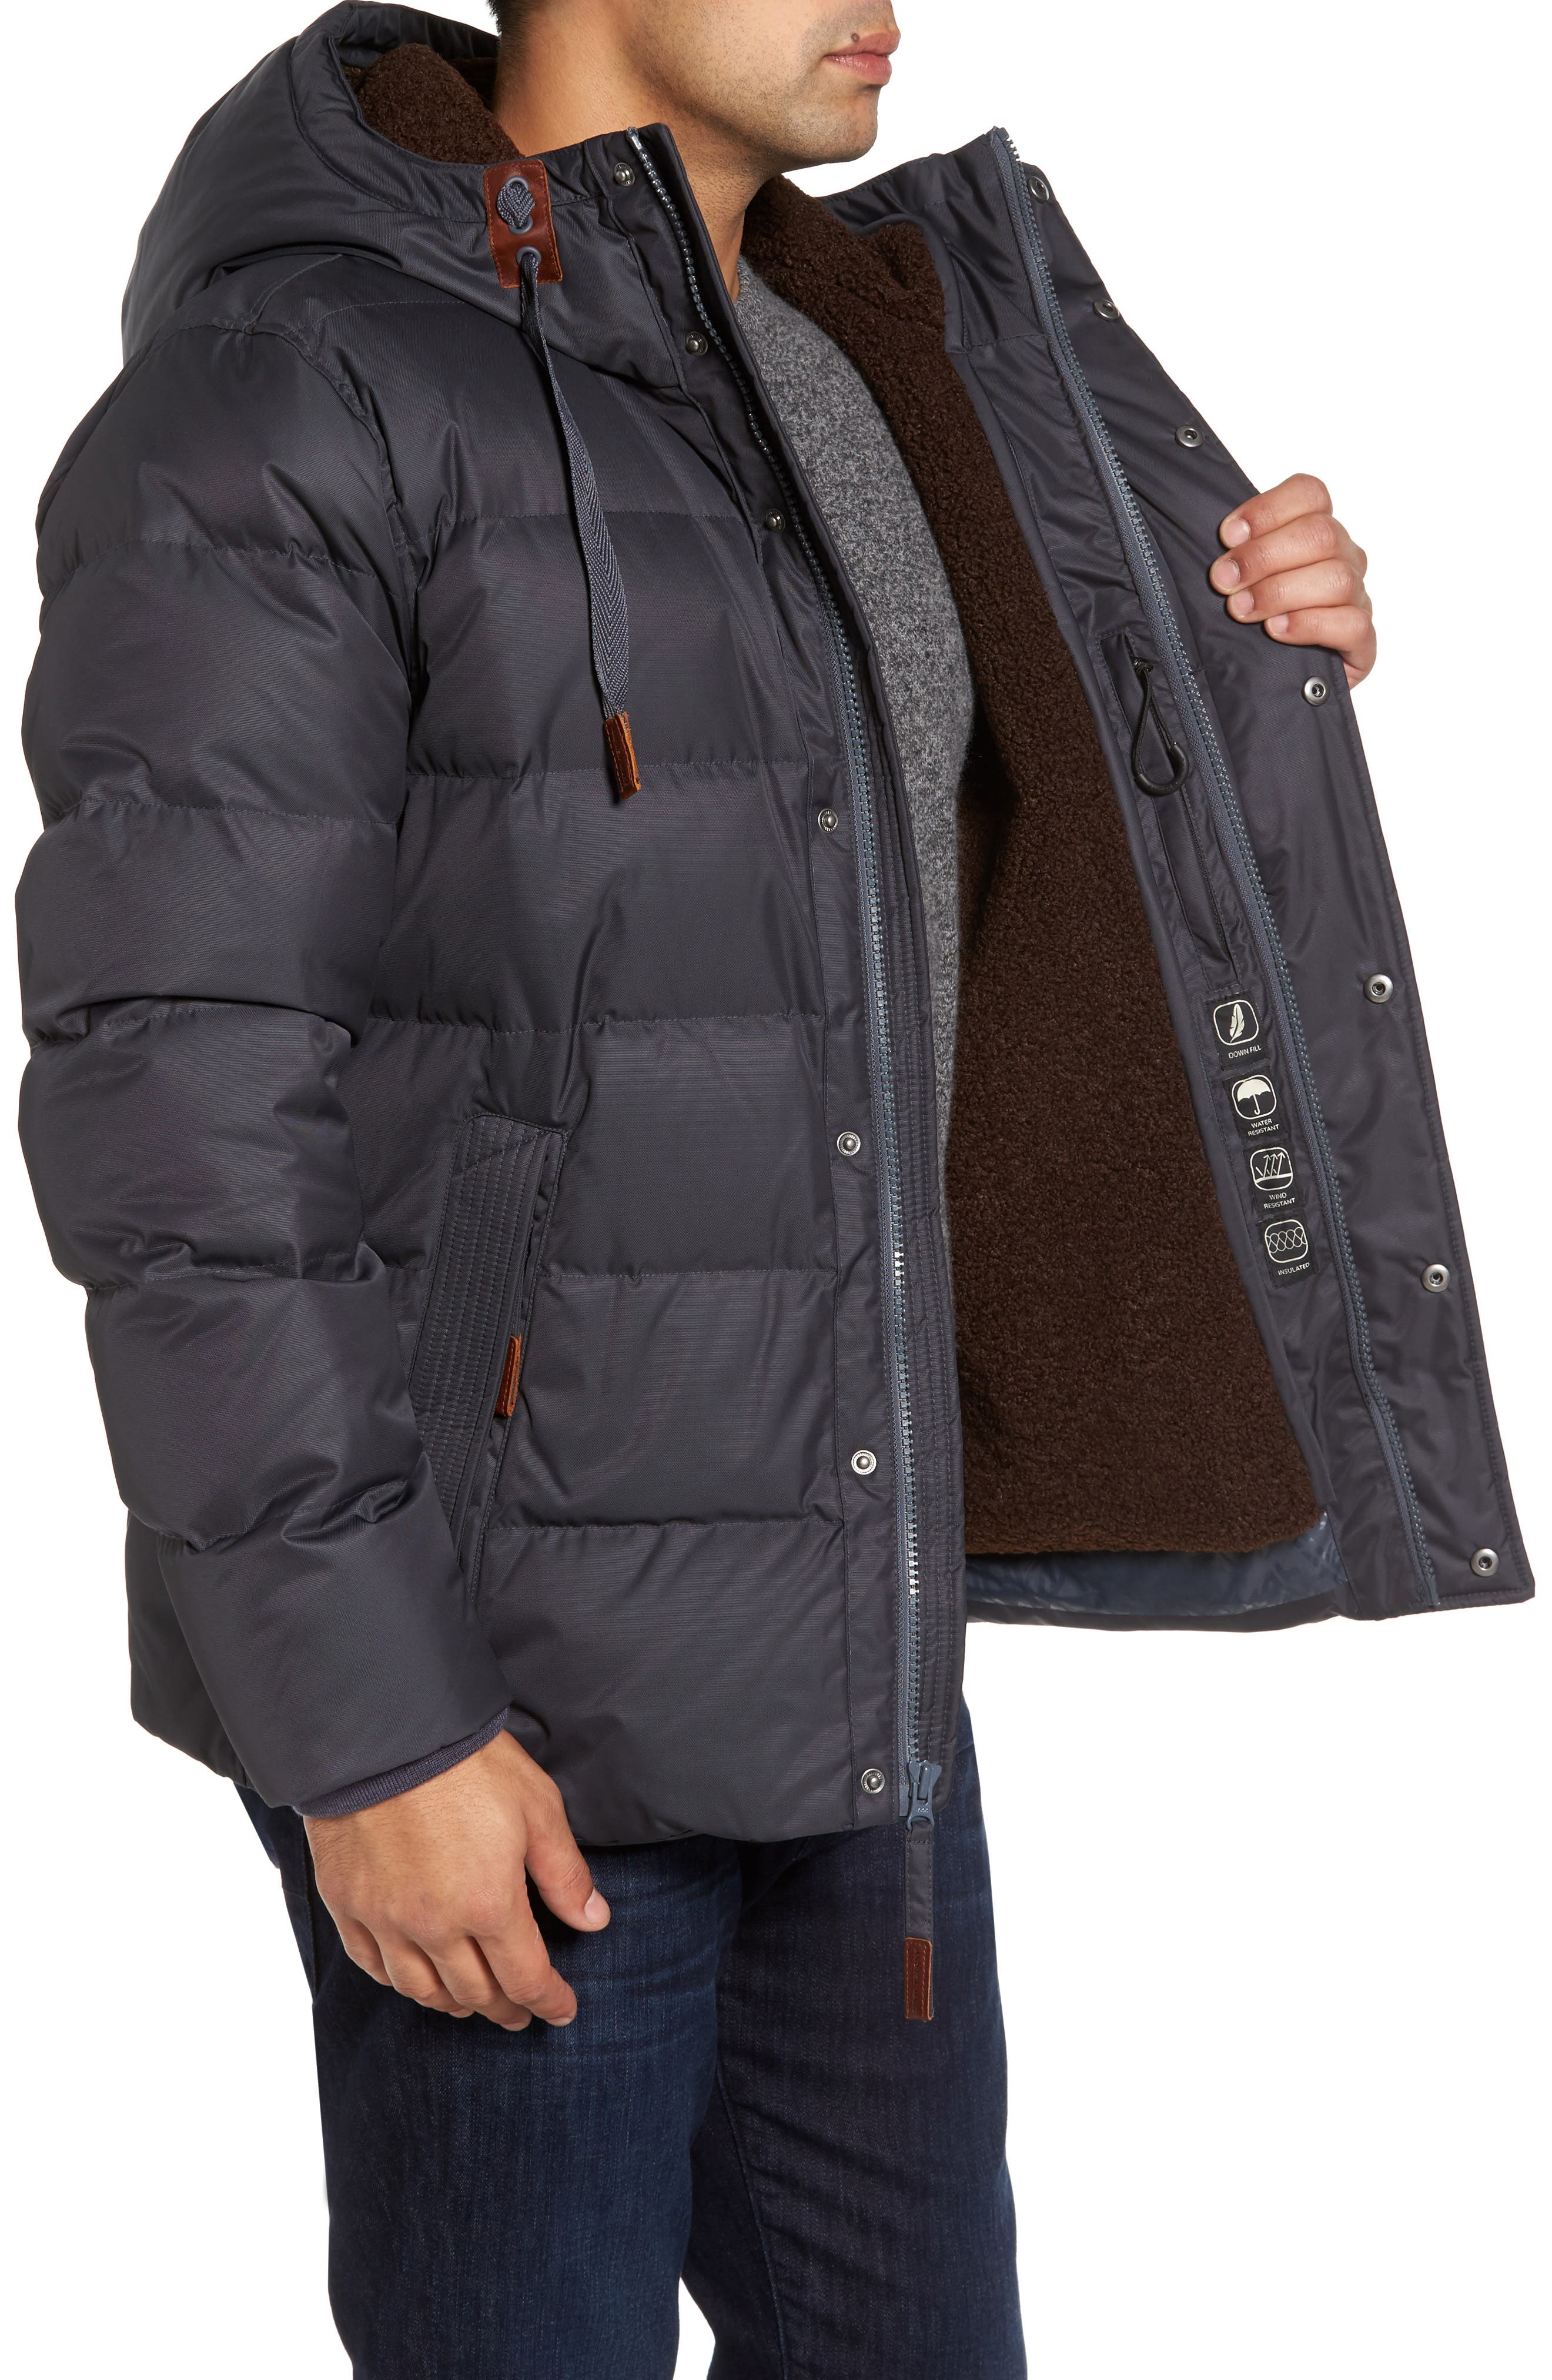 Groton Slim Down Jacket with Faux Shearling Lining,                             Alternate thumbnail 6, color,